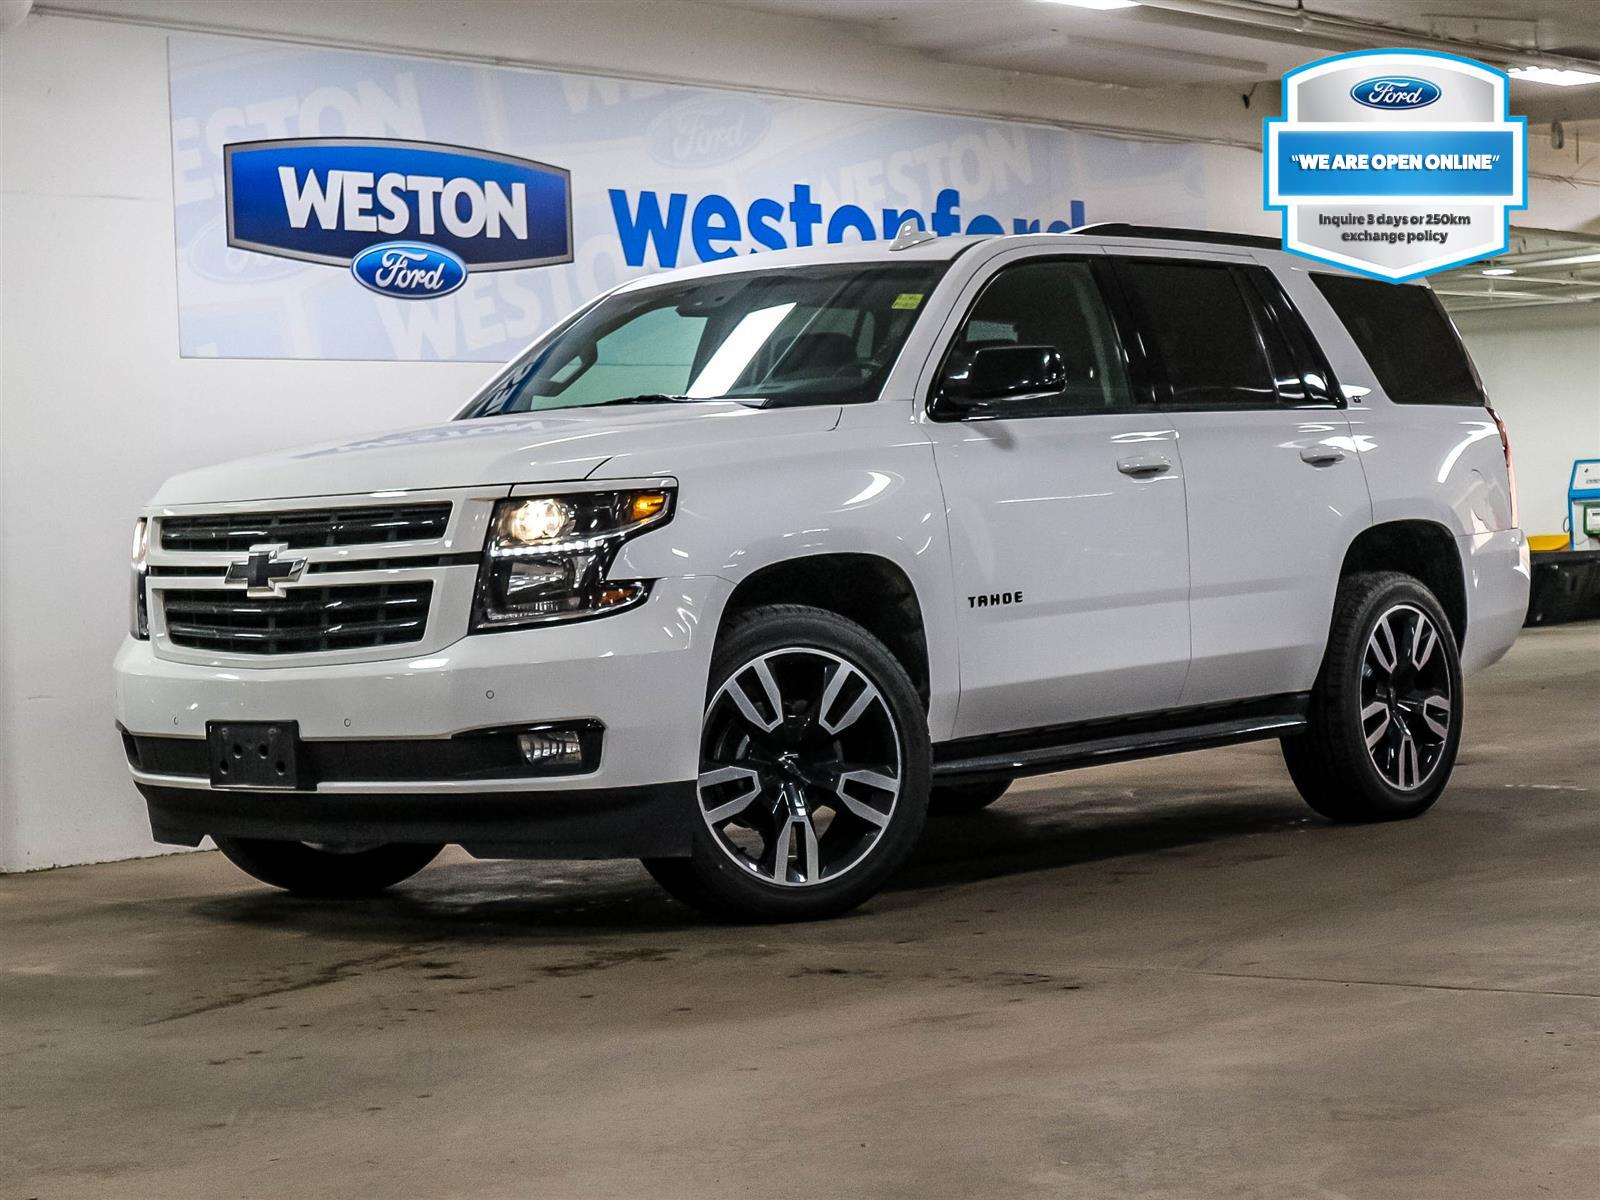 used 2018 Chevrolet Tahoe car, priced at $64,788